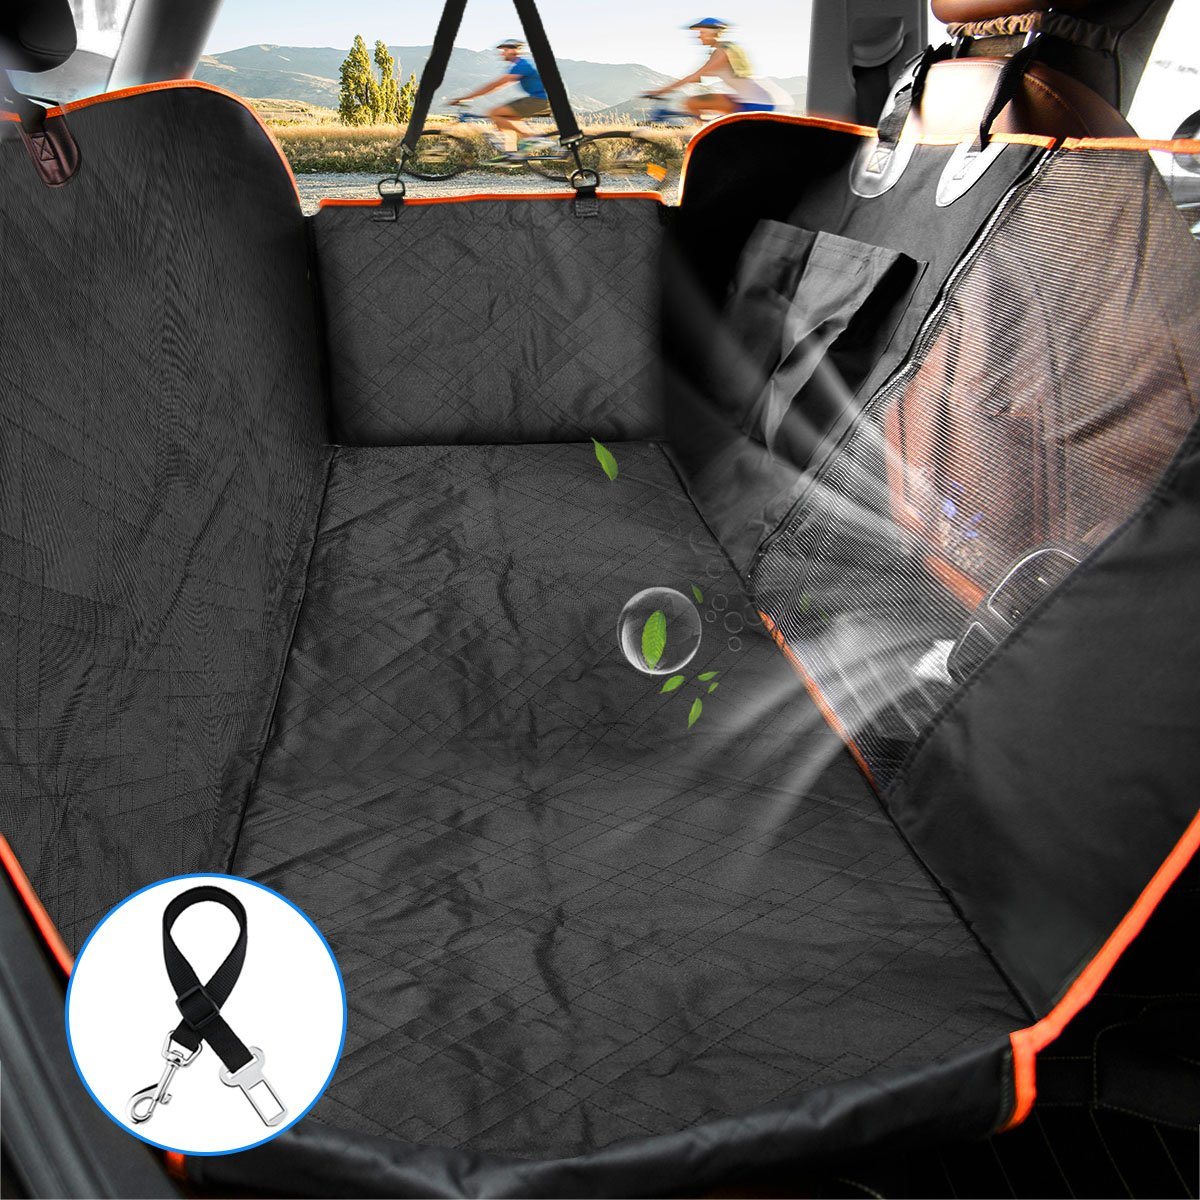 Lanktoo Dog Seat Cover with Mesh Viewing Window and Front Split Zipper, Heavy Duty Waterproof Nonslip Dog Car Hammock & Back Seat Cover for Cars Trucks SUVs (L54xW59 inches)